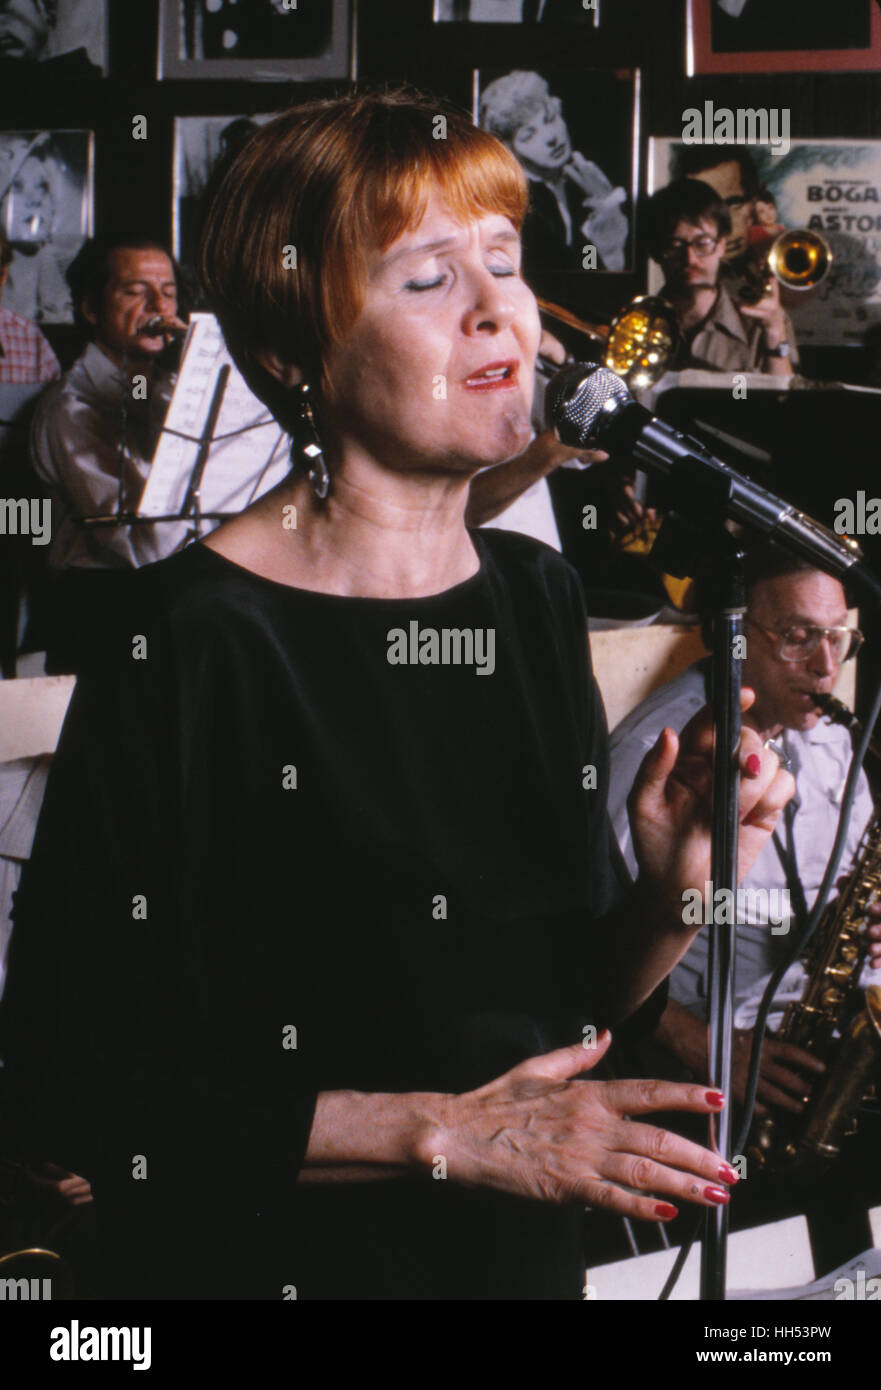 Vocalist Barbara Lea, during a performance at the Red Blazer Too jazz club in New York City in 1982. - Stock Image